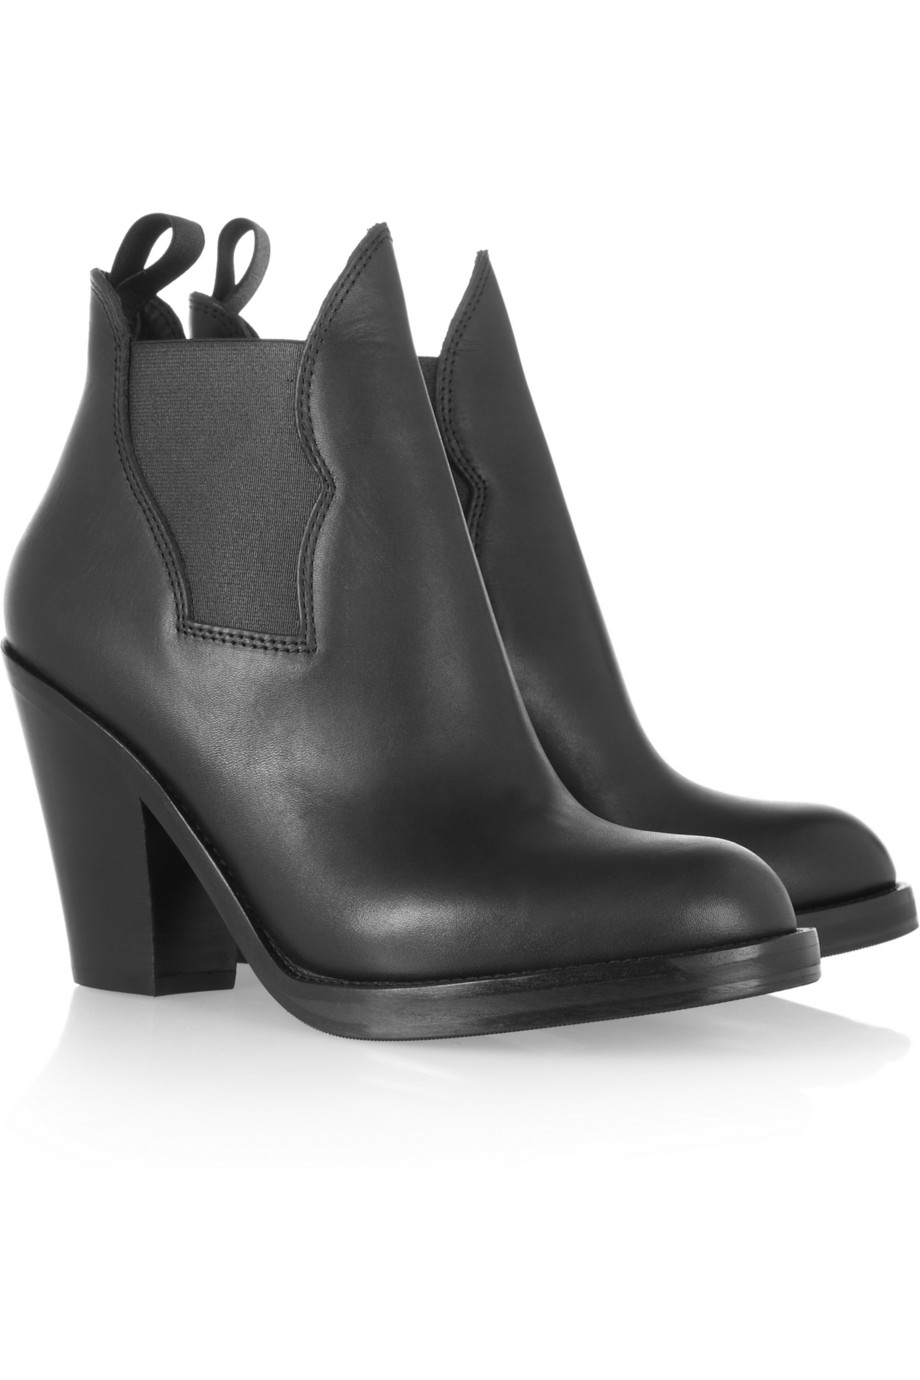 acne star leather ankle boots in black lyst. Black Bedroom Furniture Sets. Home Design Ideas